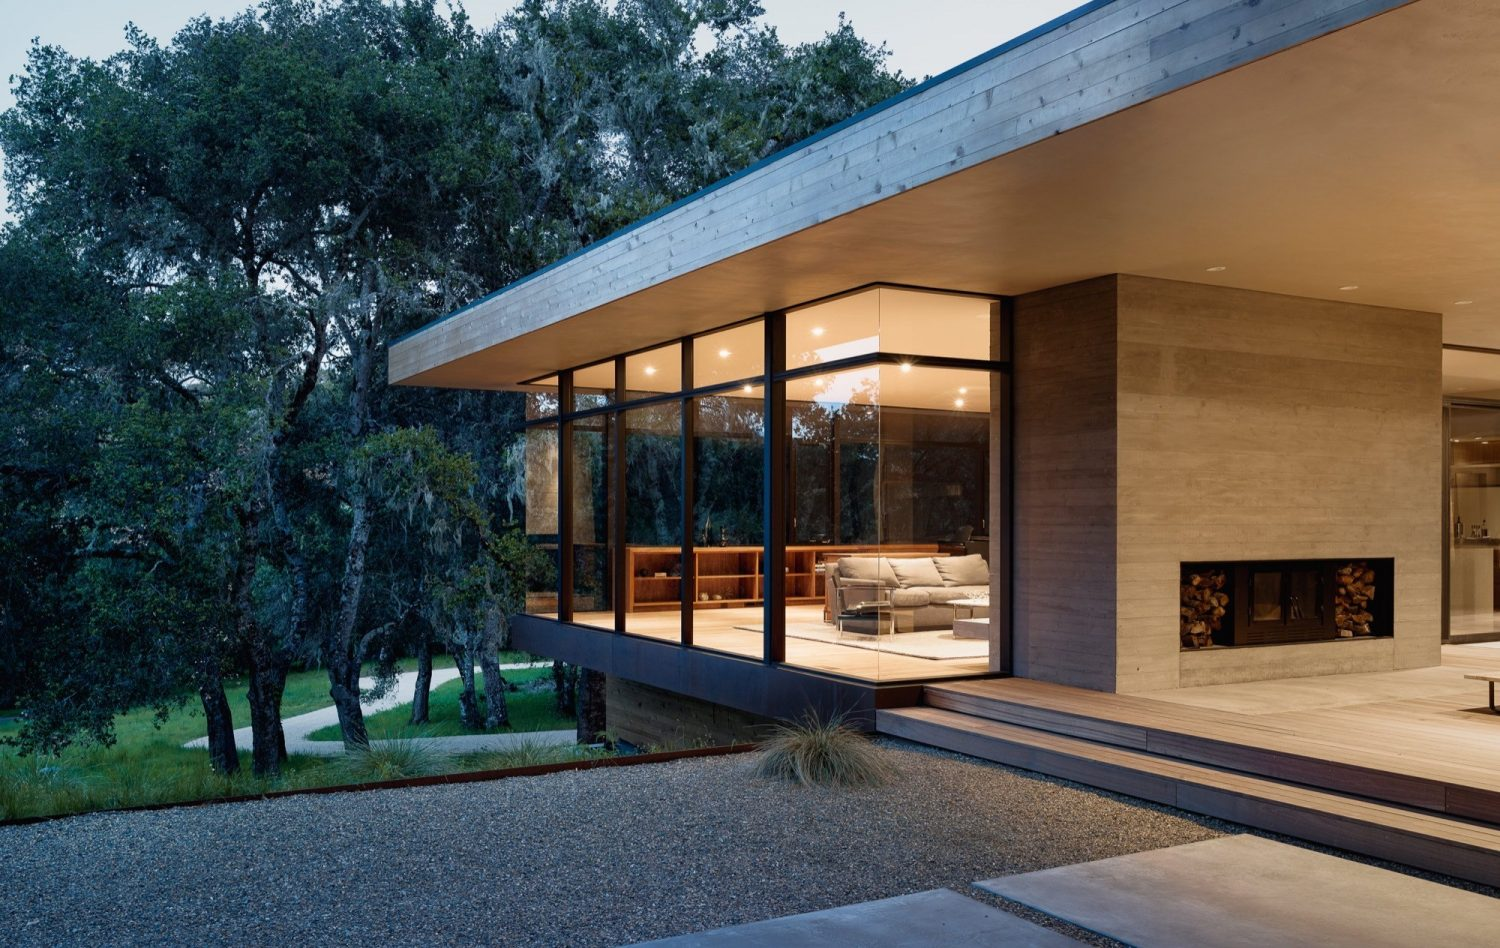 Carmel Valley Residence by Piechota Architecture